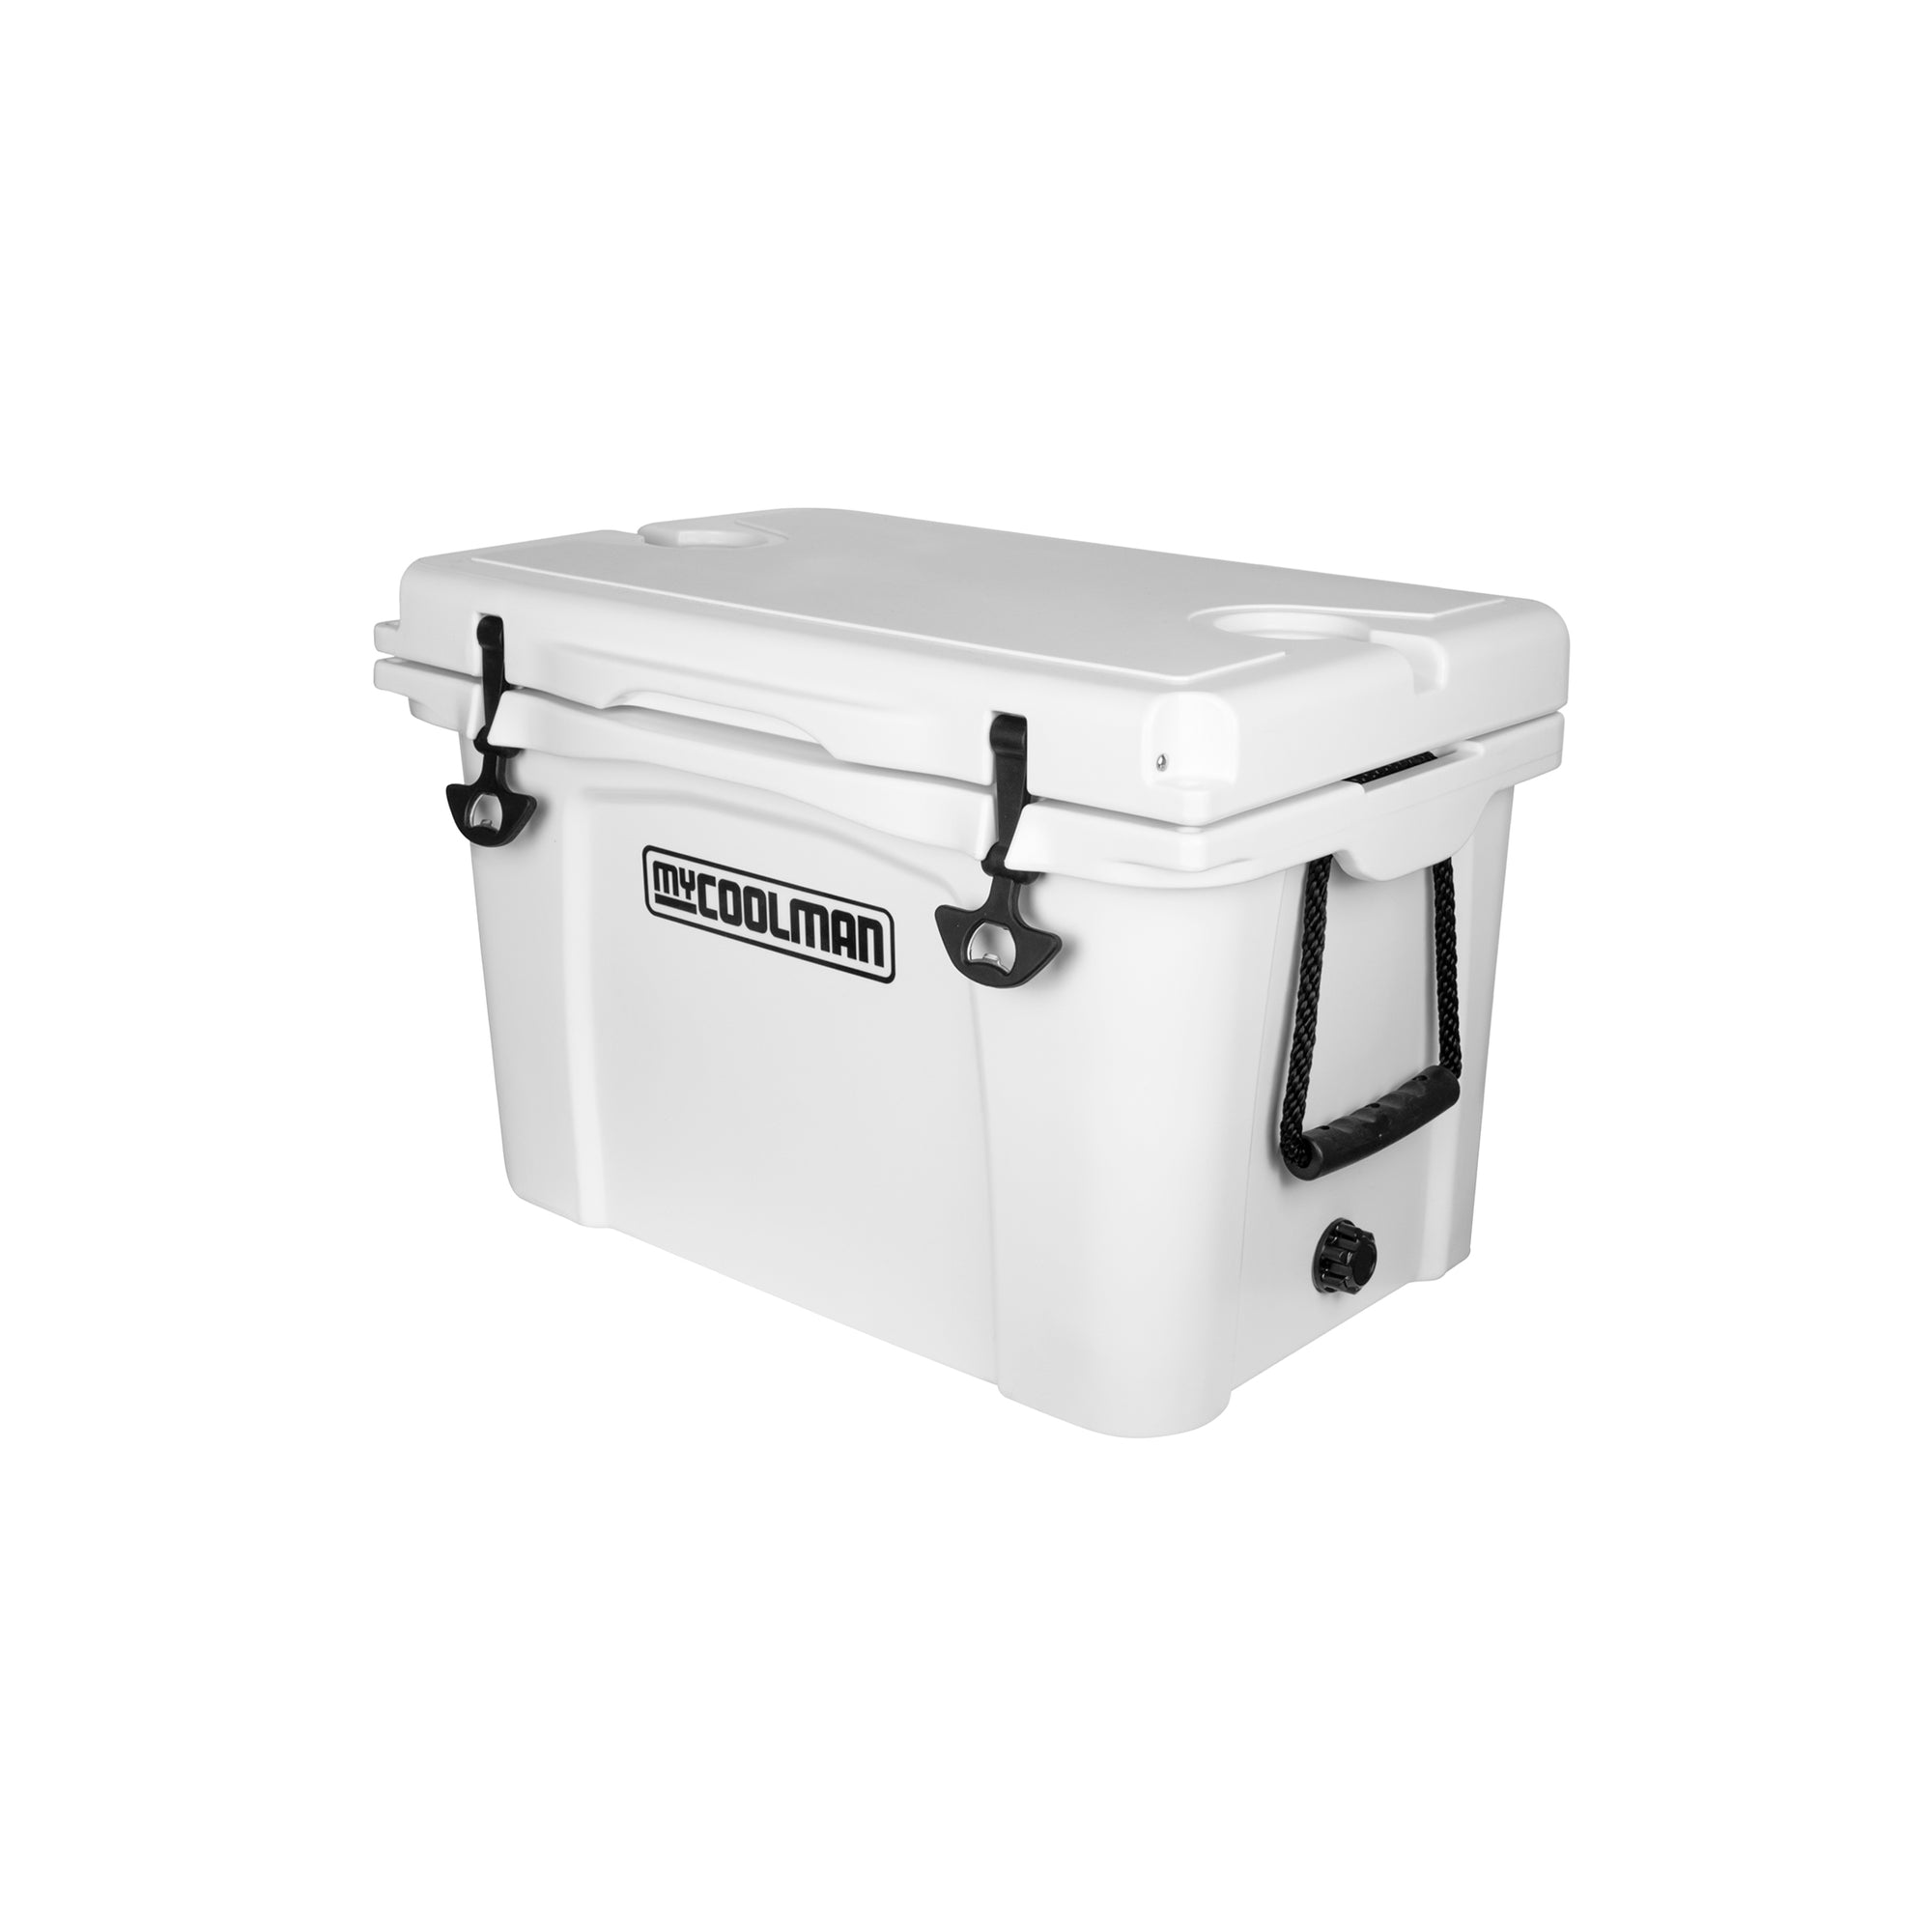 myCOOLMAN - 36L Icebox - CIP36 myCOOLMAN | Portable Fridges & Freezers